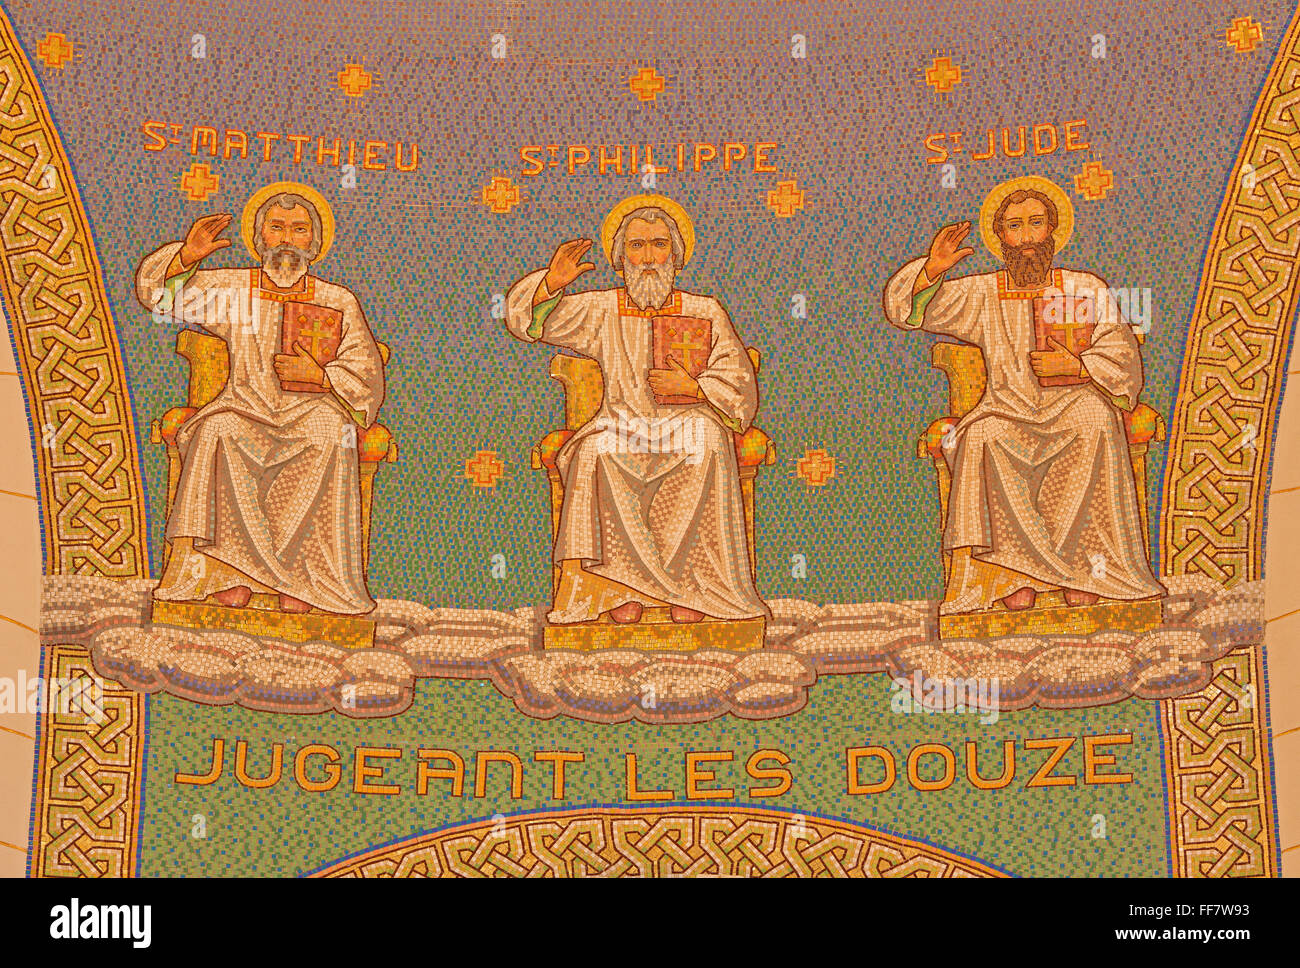 JERUSALEM, ISRAEL - MARCH 3, 2015: The mosaic of apostles in Church of St. Peter in Gallicantu. Stock Photo